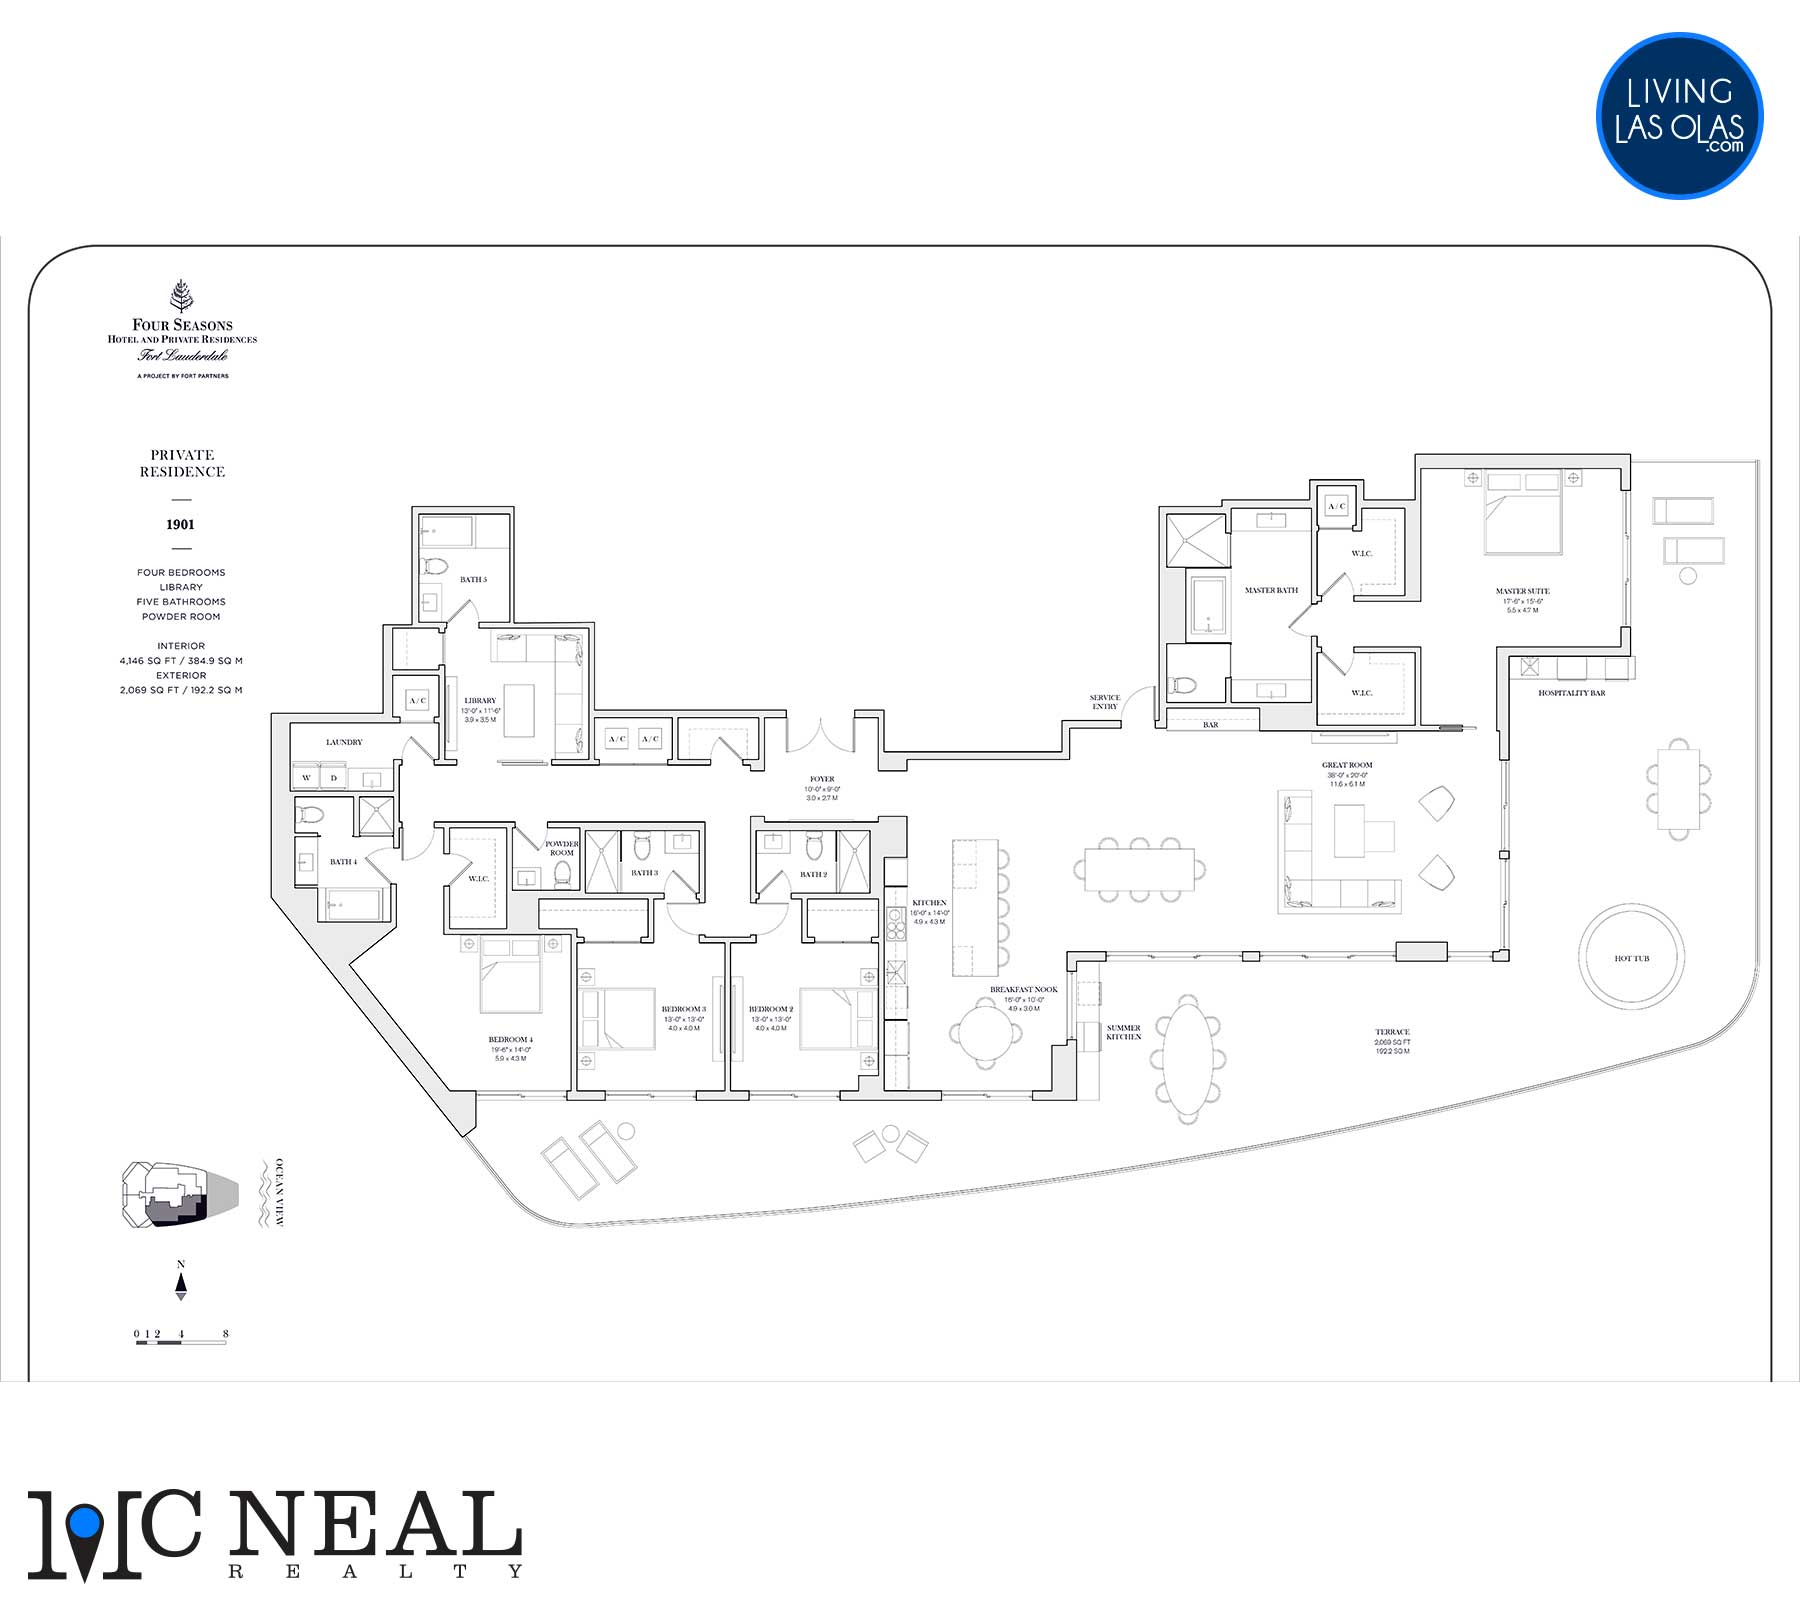 Four Seasons Private Residences Floor Plan 1901